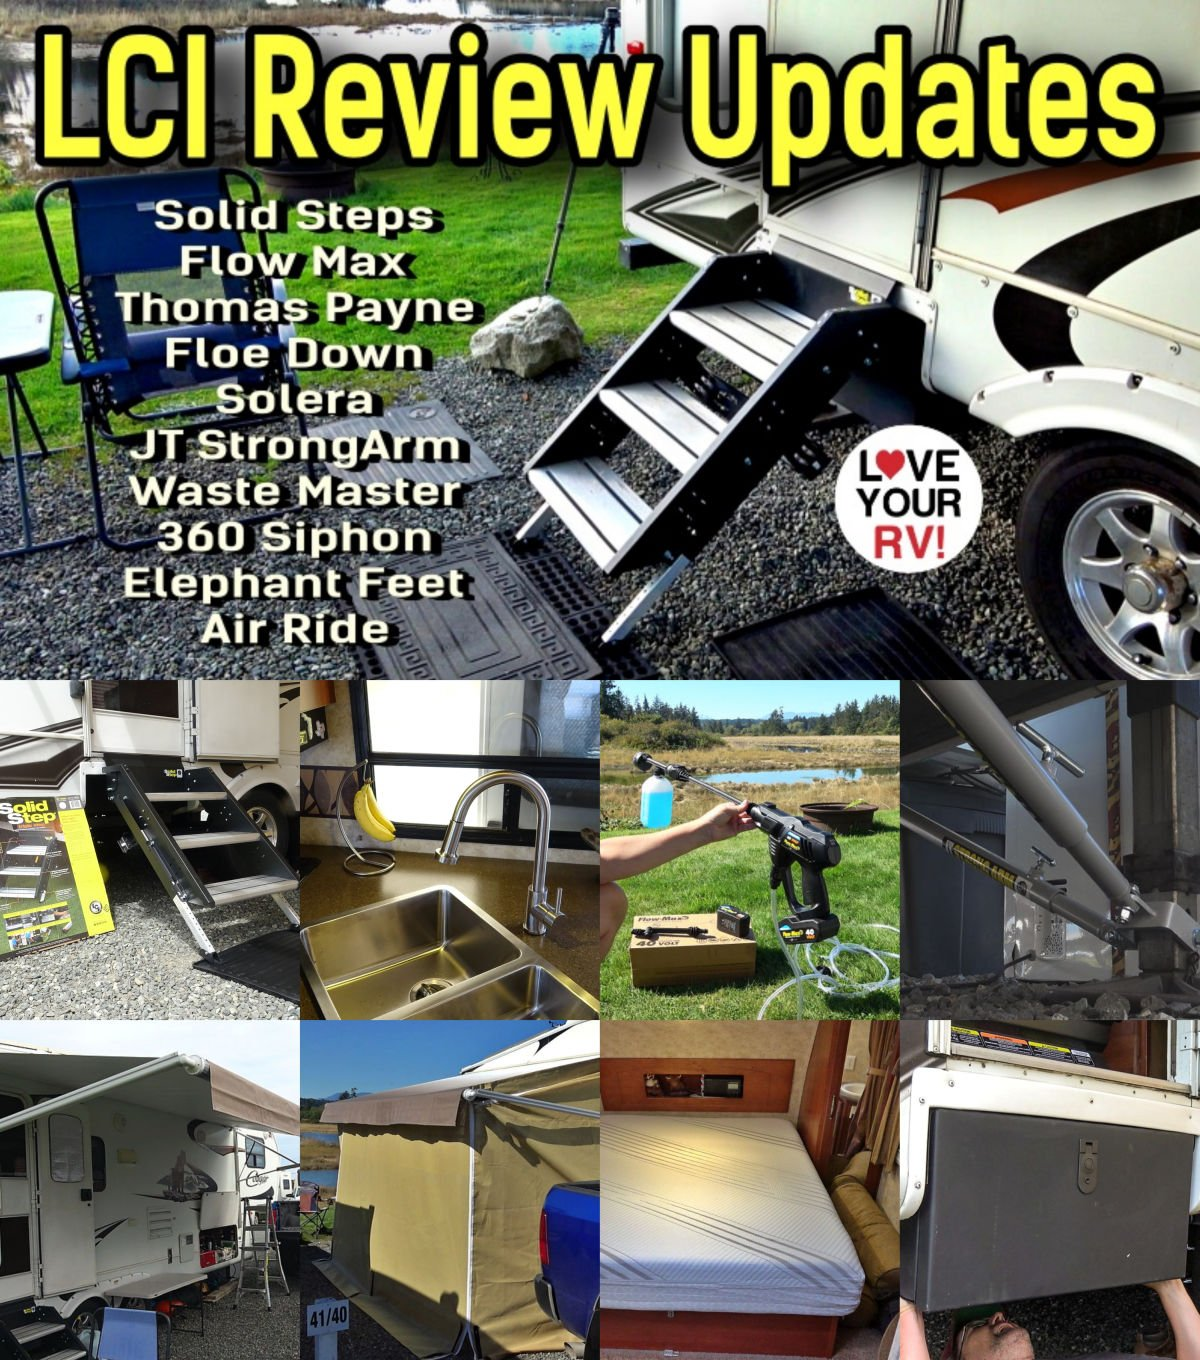 Lippert Components (LCI) RV Product Review Update Roundup from Love Your RV!